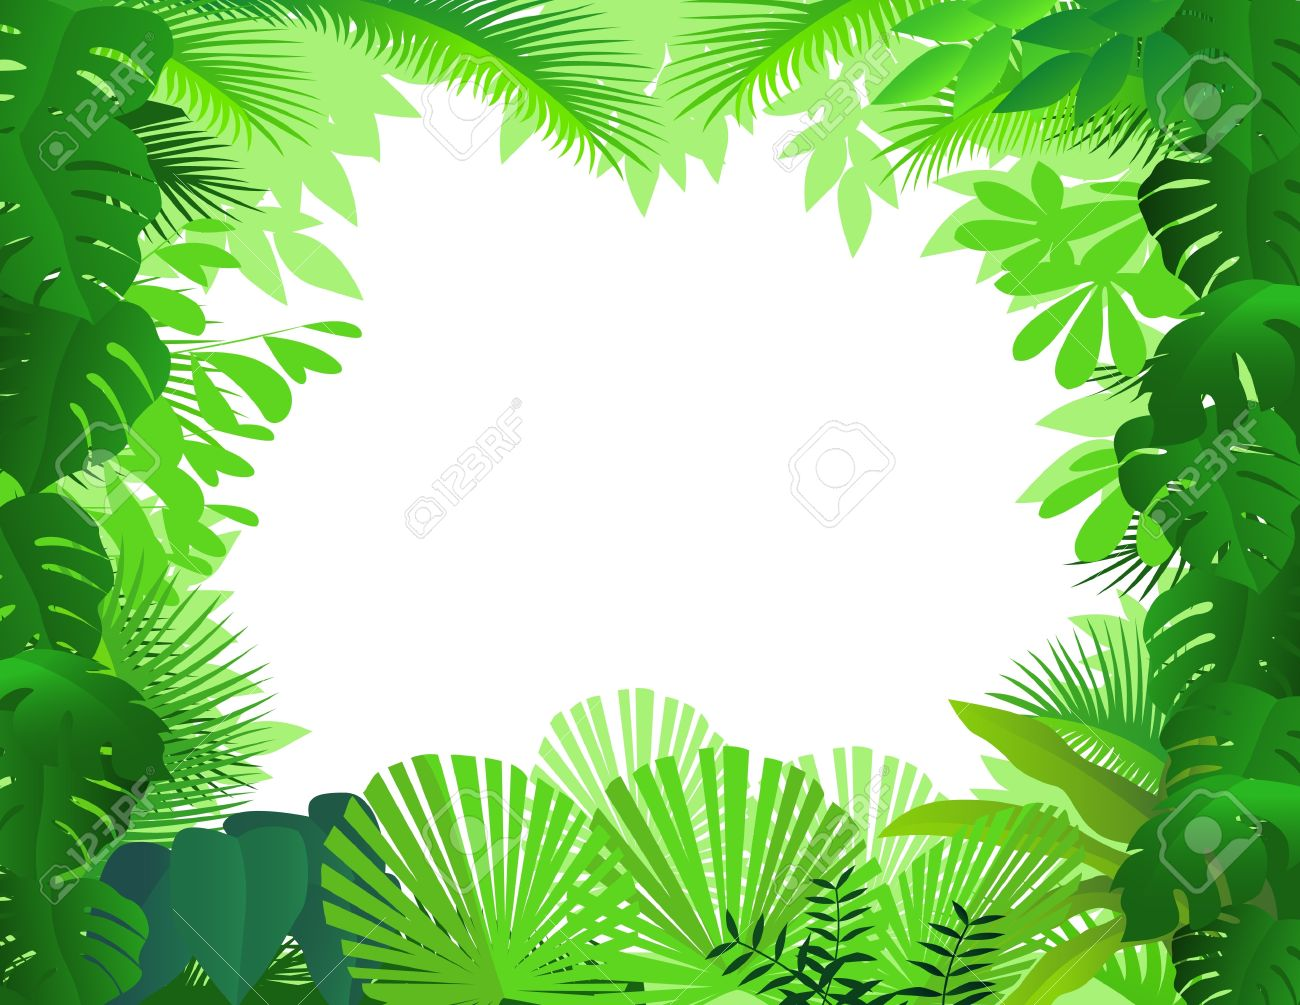 Tropical rainforest clipart.